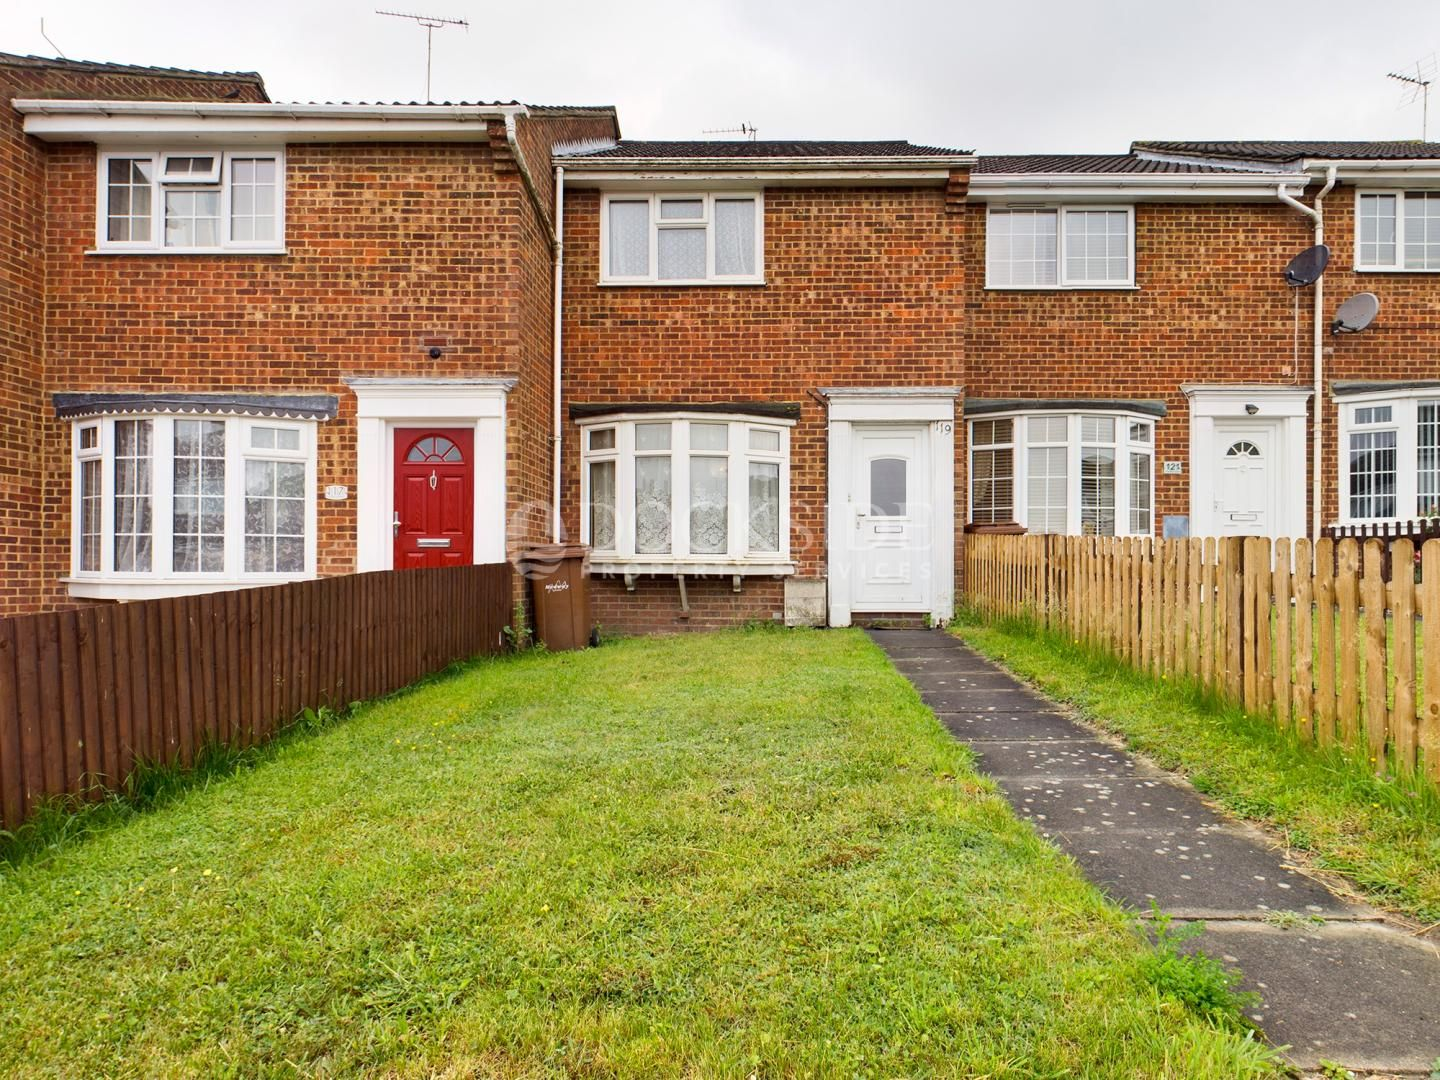 2 bed house for sale in Rushdean Road, ME2